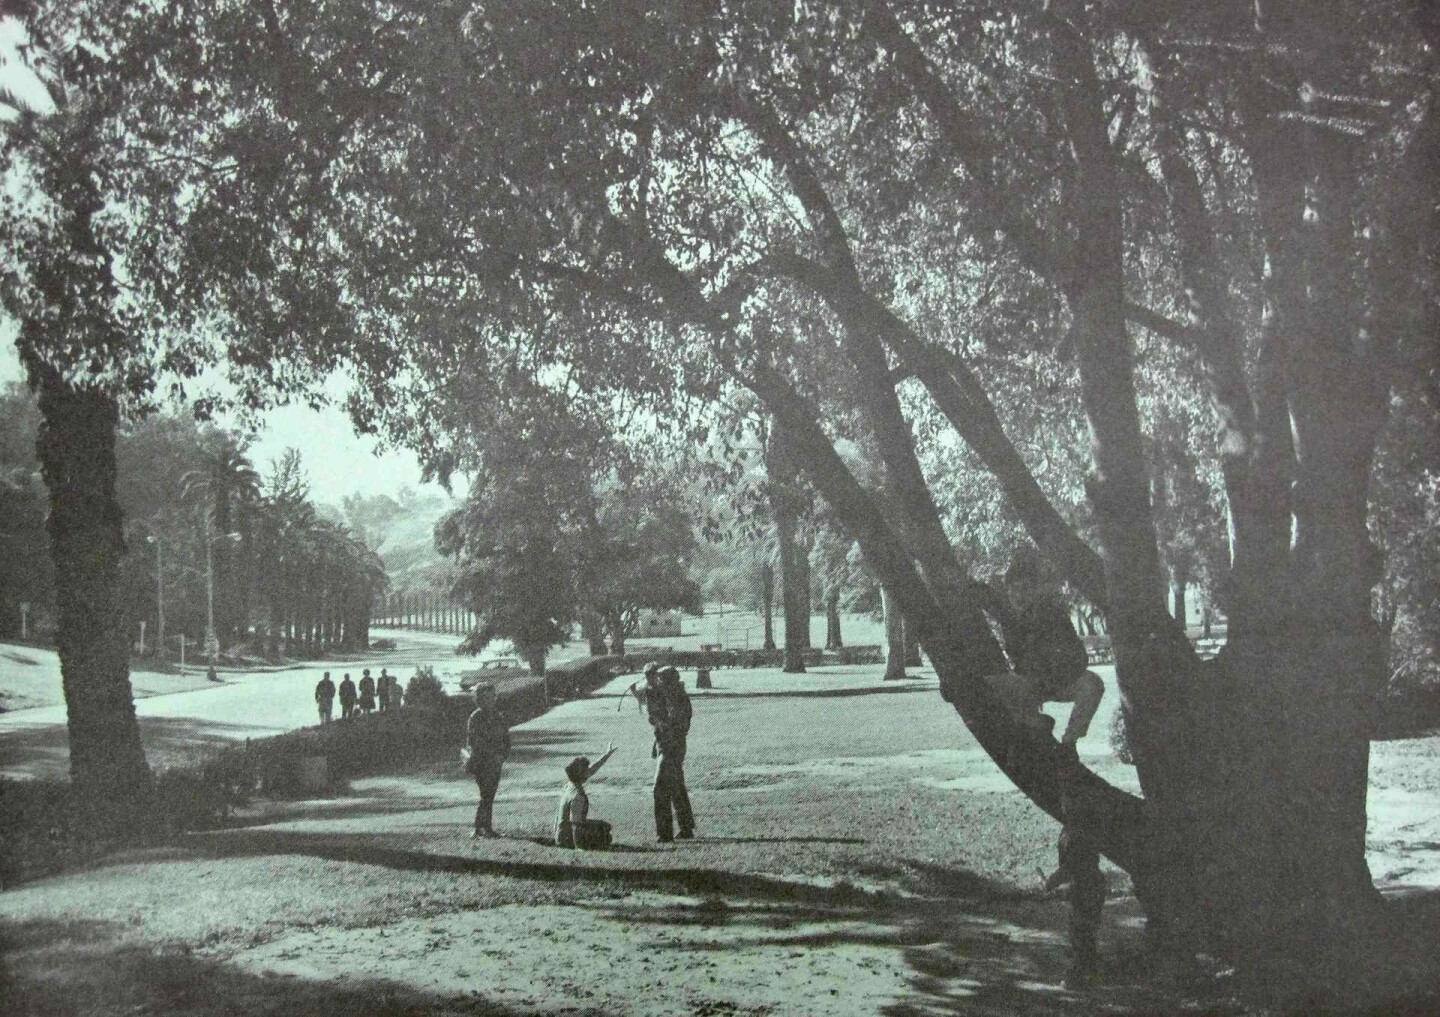 Photograph of Elysian Park, showing area that would have be destroyed by the convention center, including the historic Avenue of the Palms.